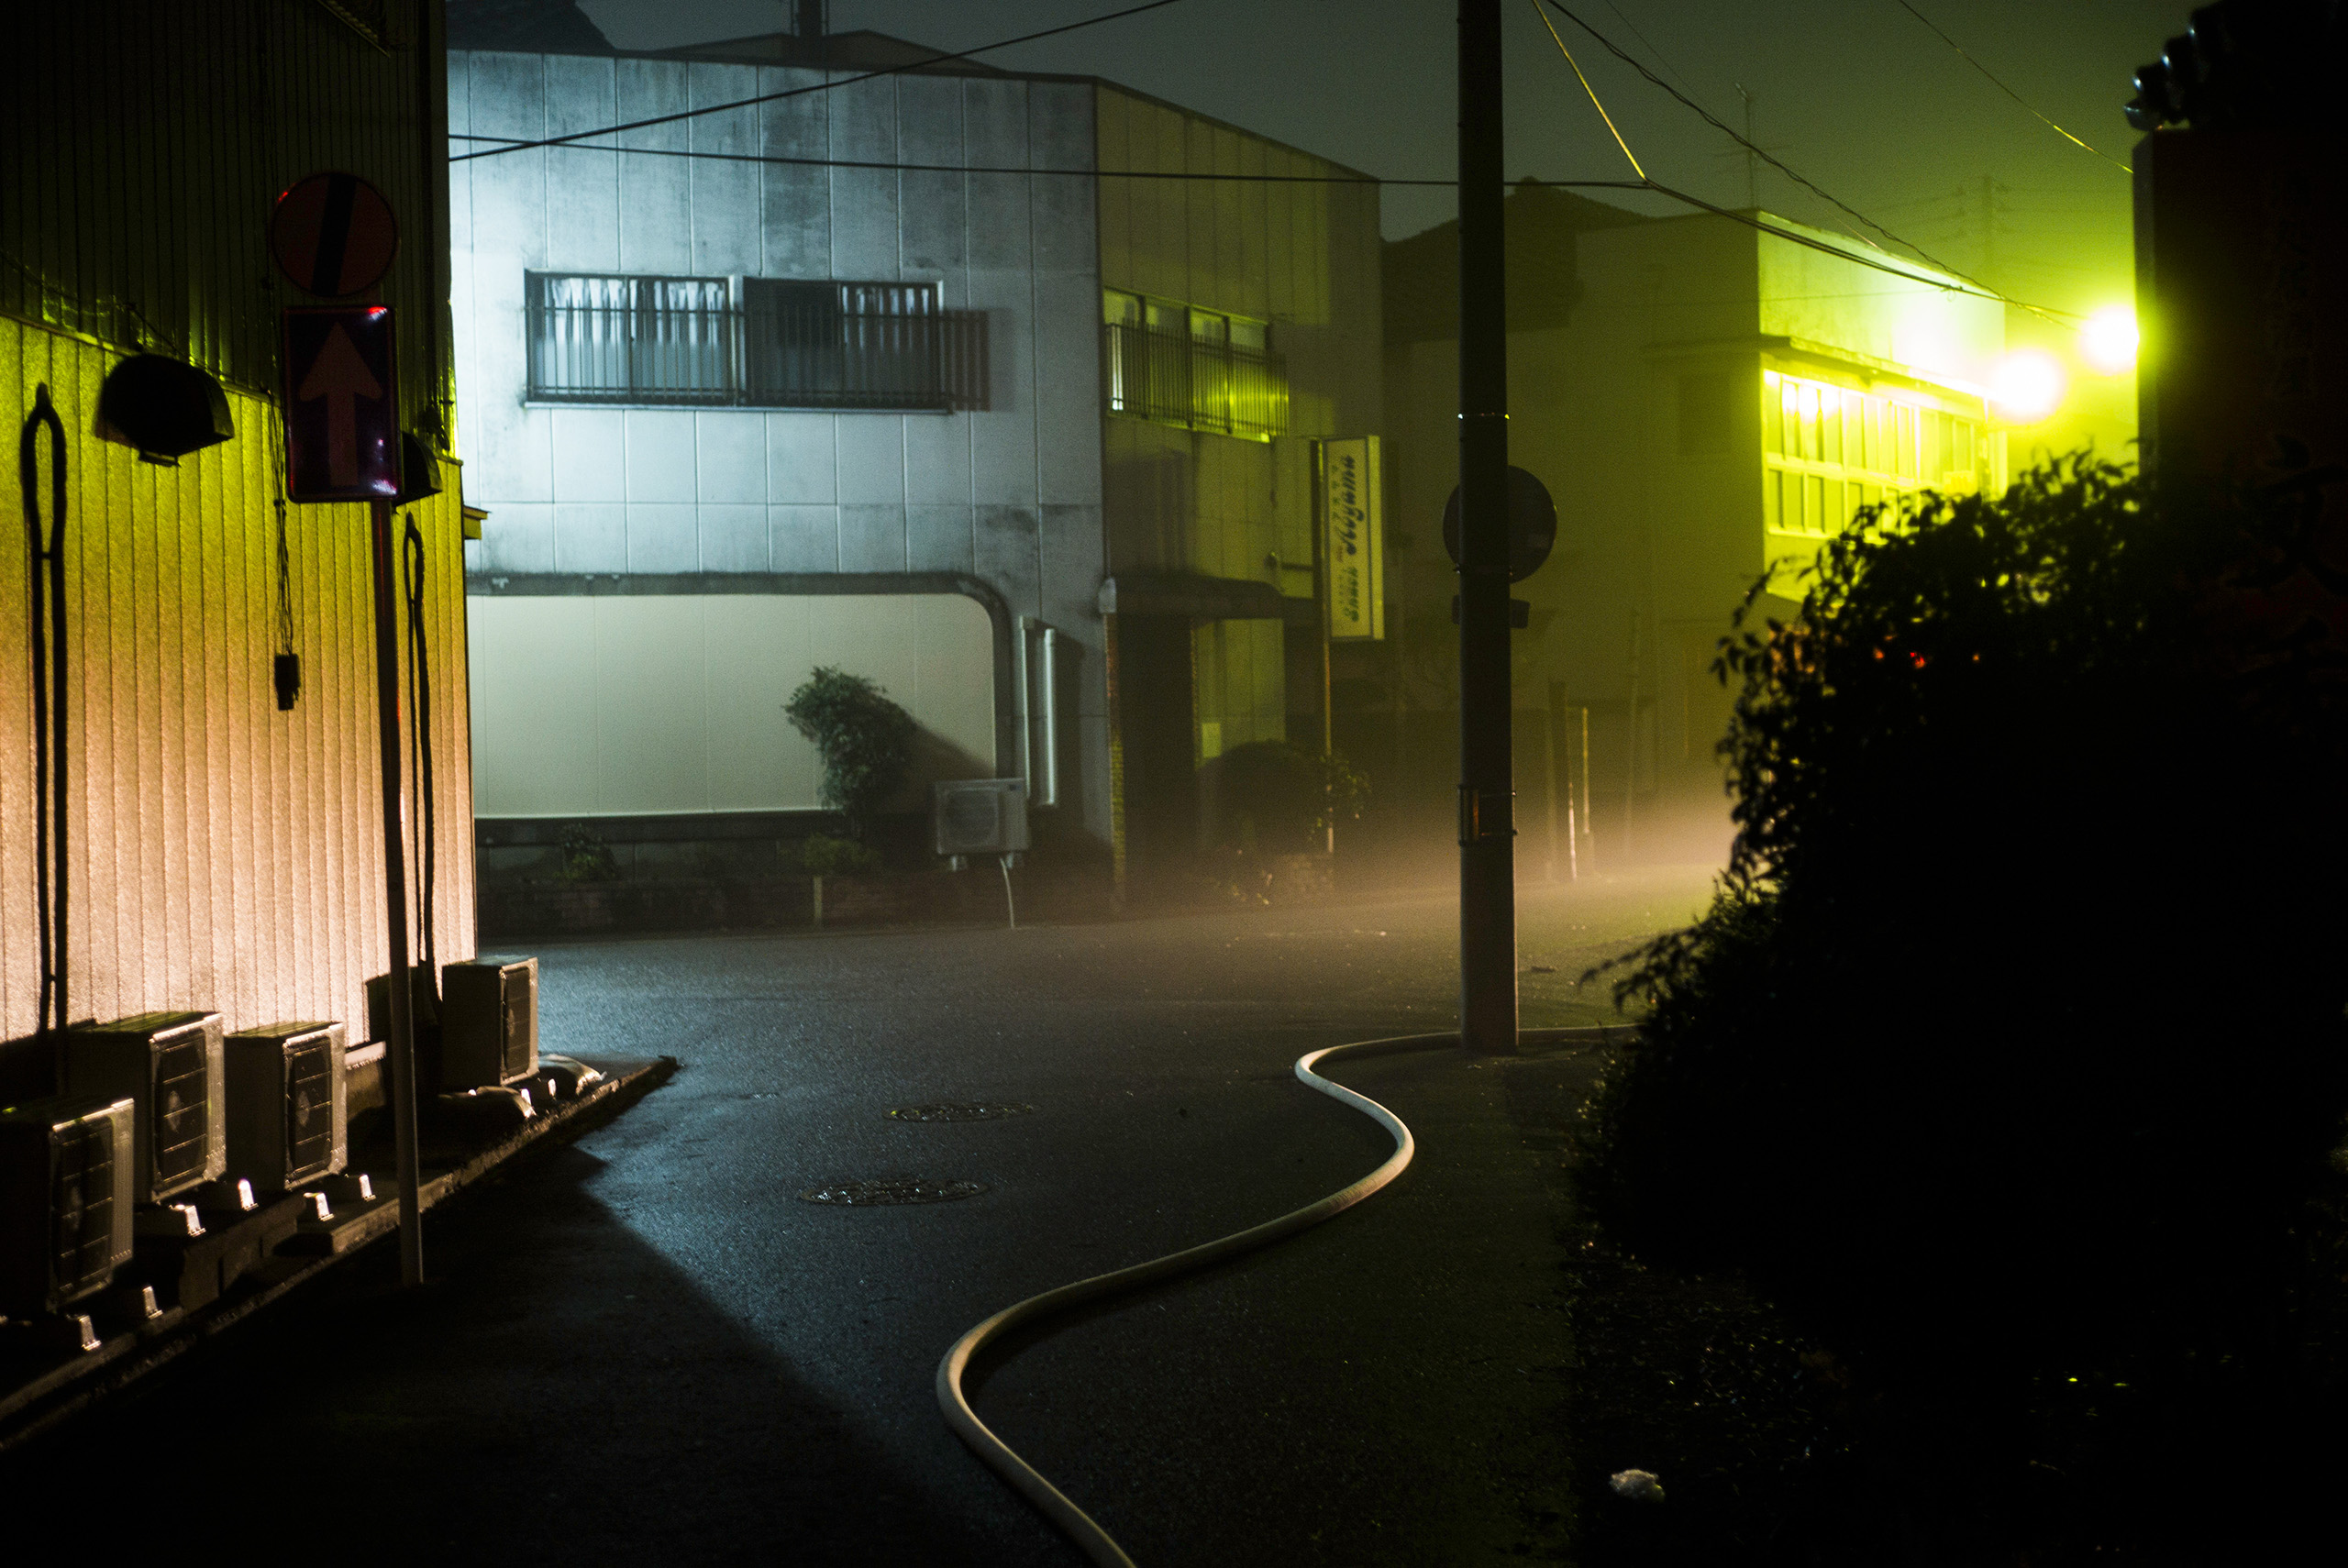 A hose from a fire engine is seen after an incident at a bar in Minamisoma, Fukushima, March 8, 2016.